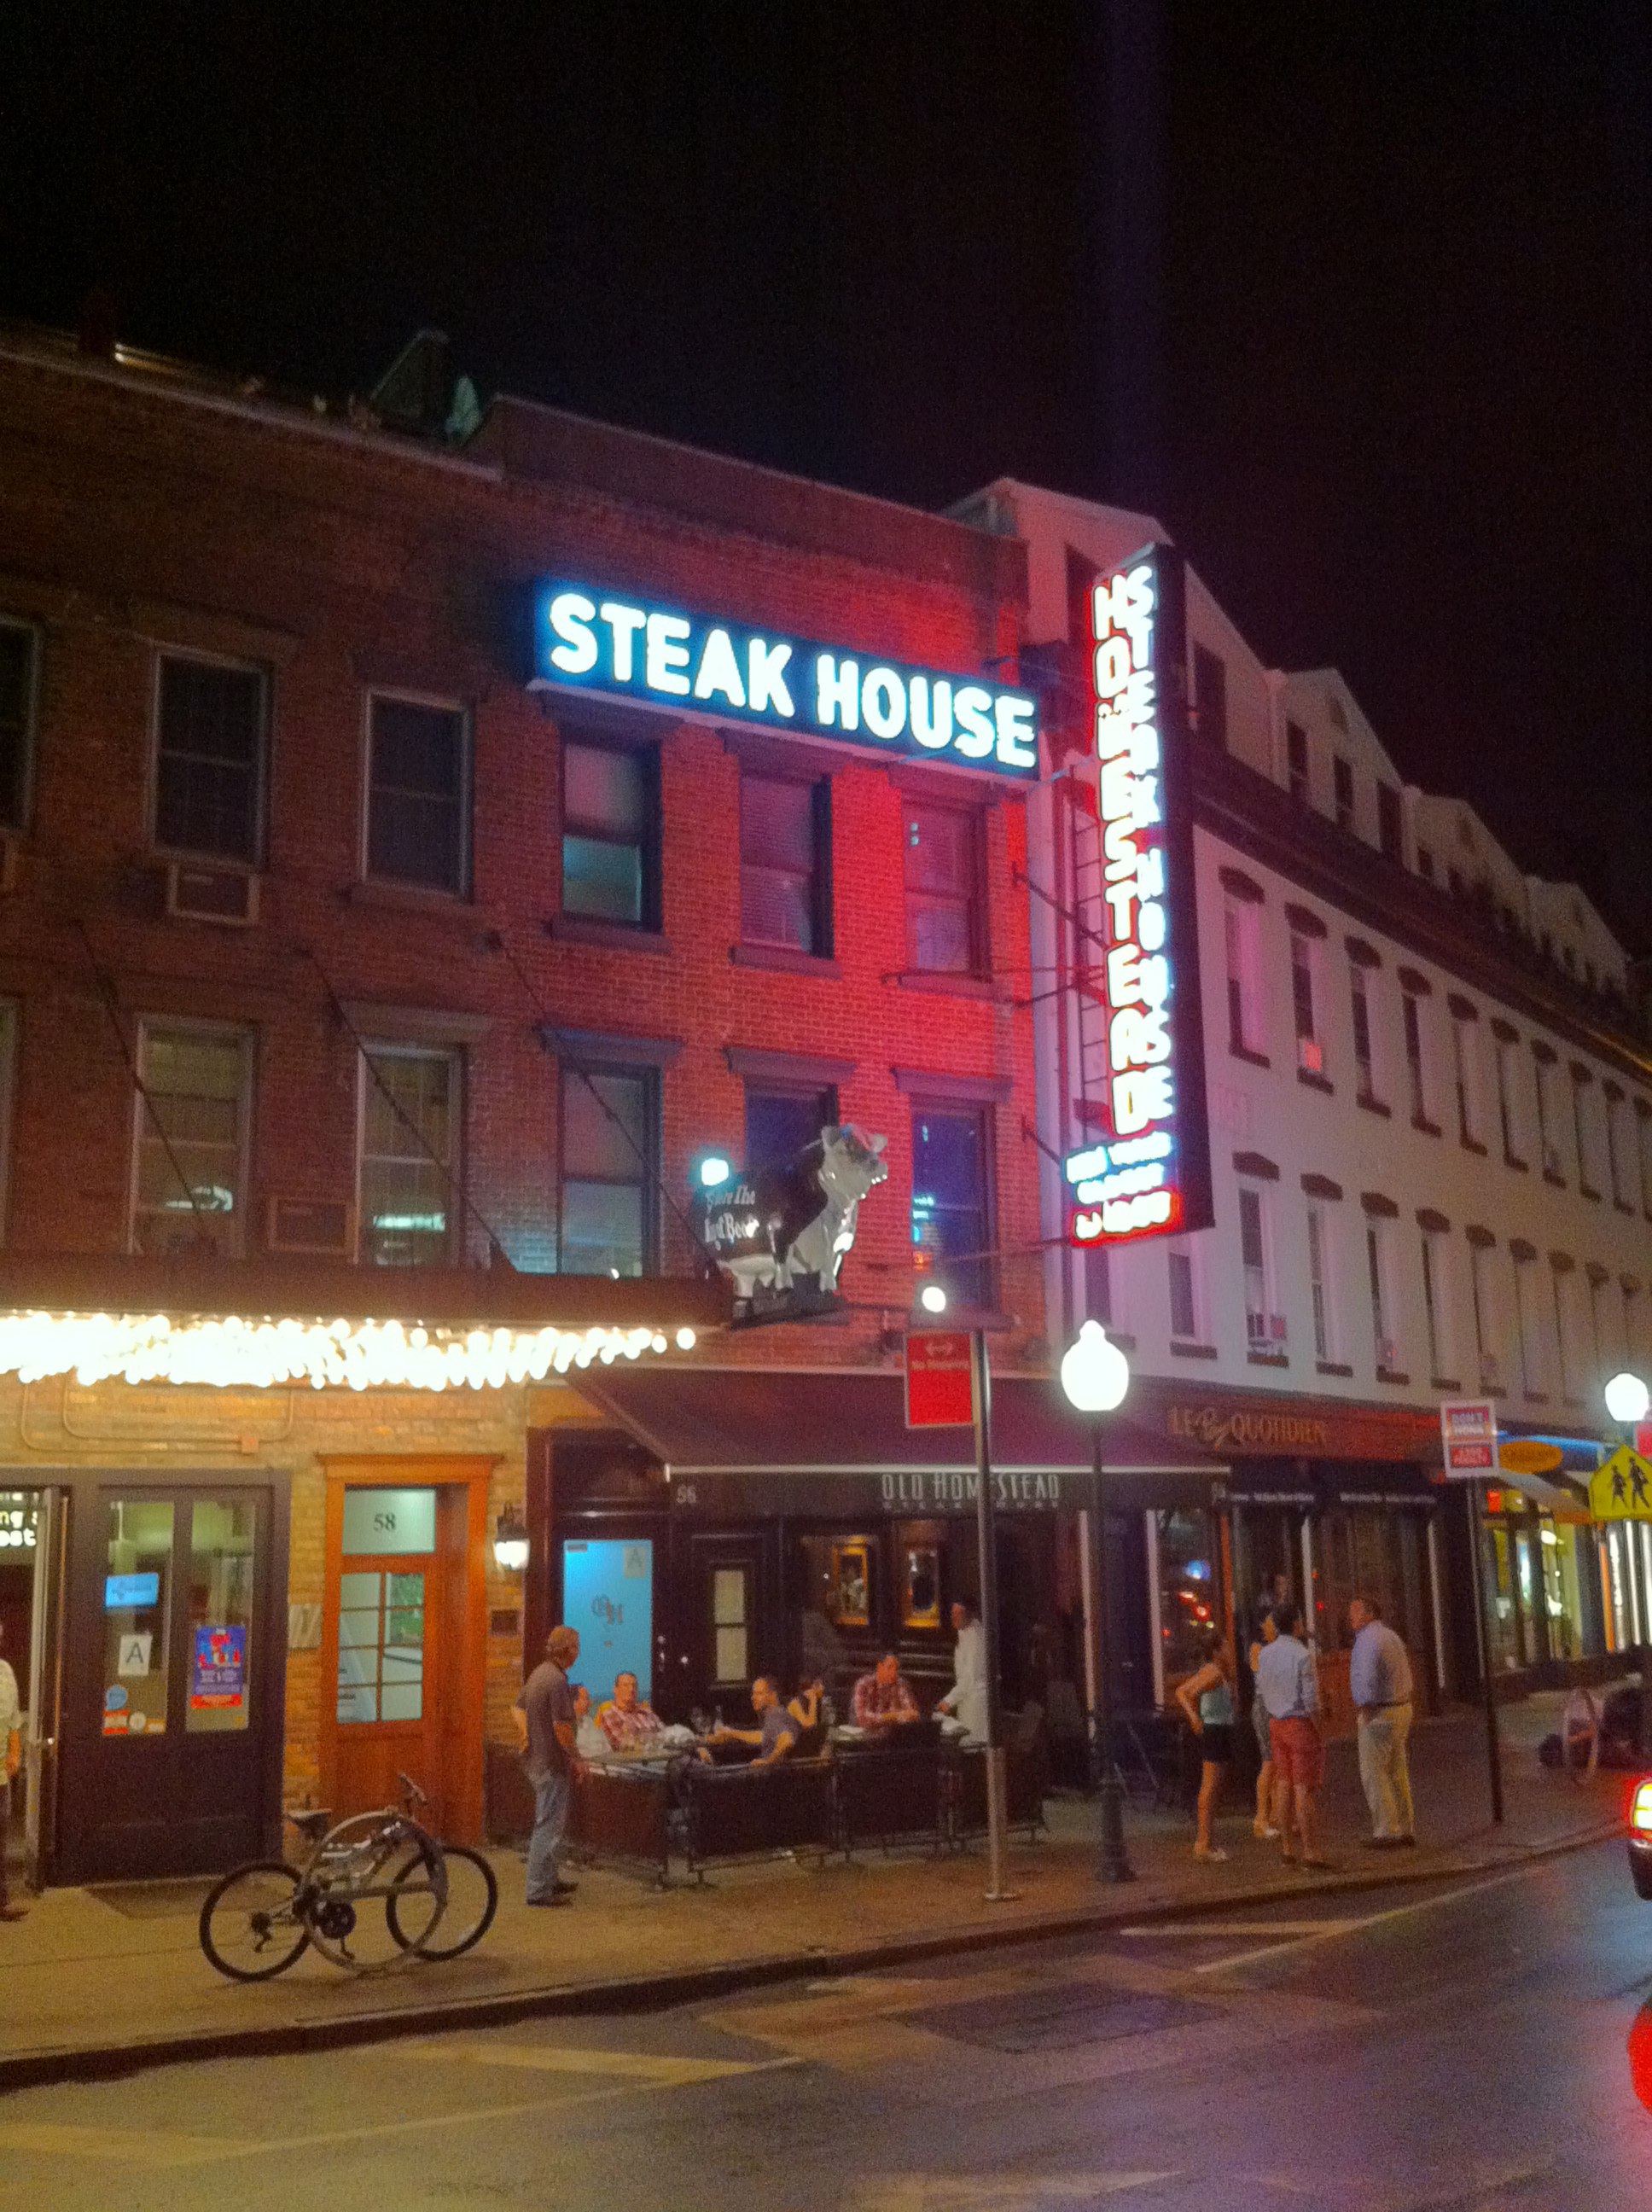 steak house Israeli steakhouse restaurants the steakiya is a classic mediterranean grill meat restaurant this model was once the most common restaurant type in israel.